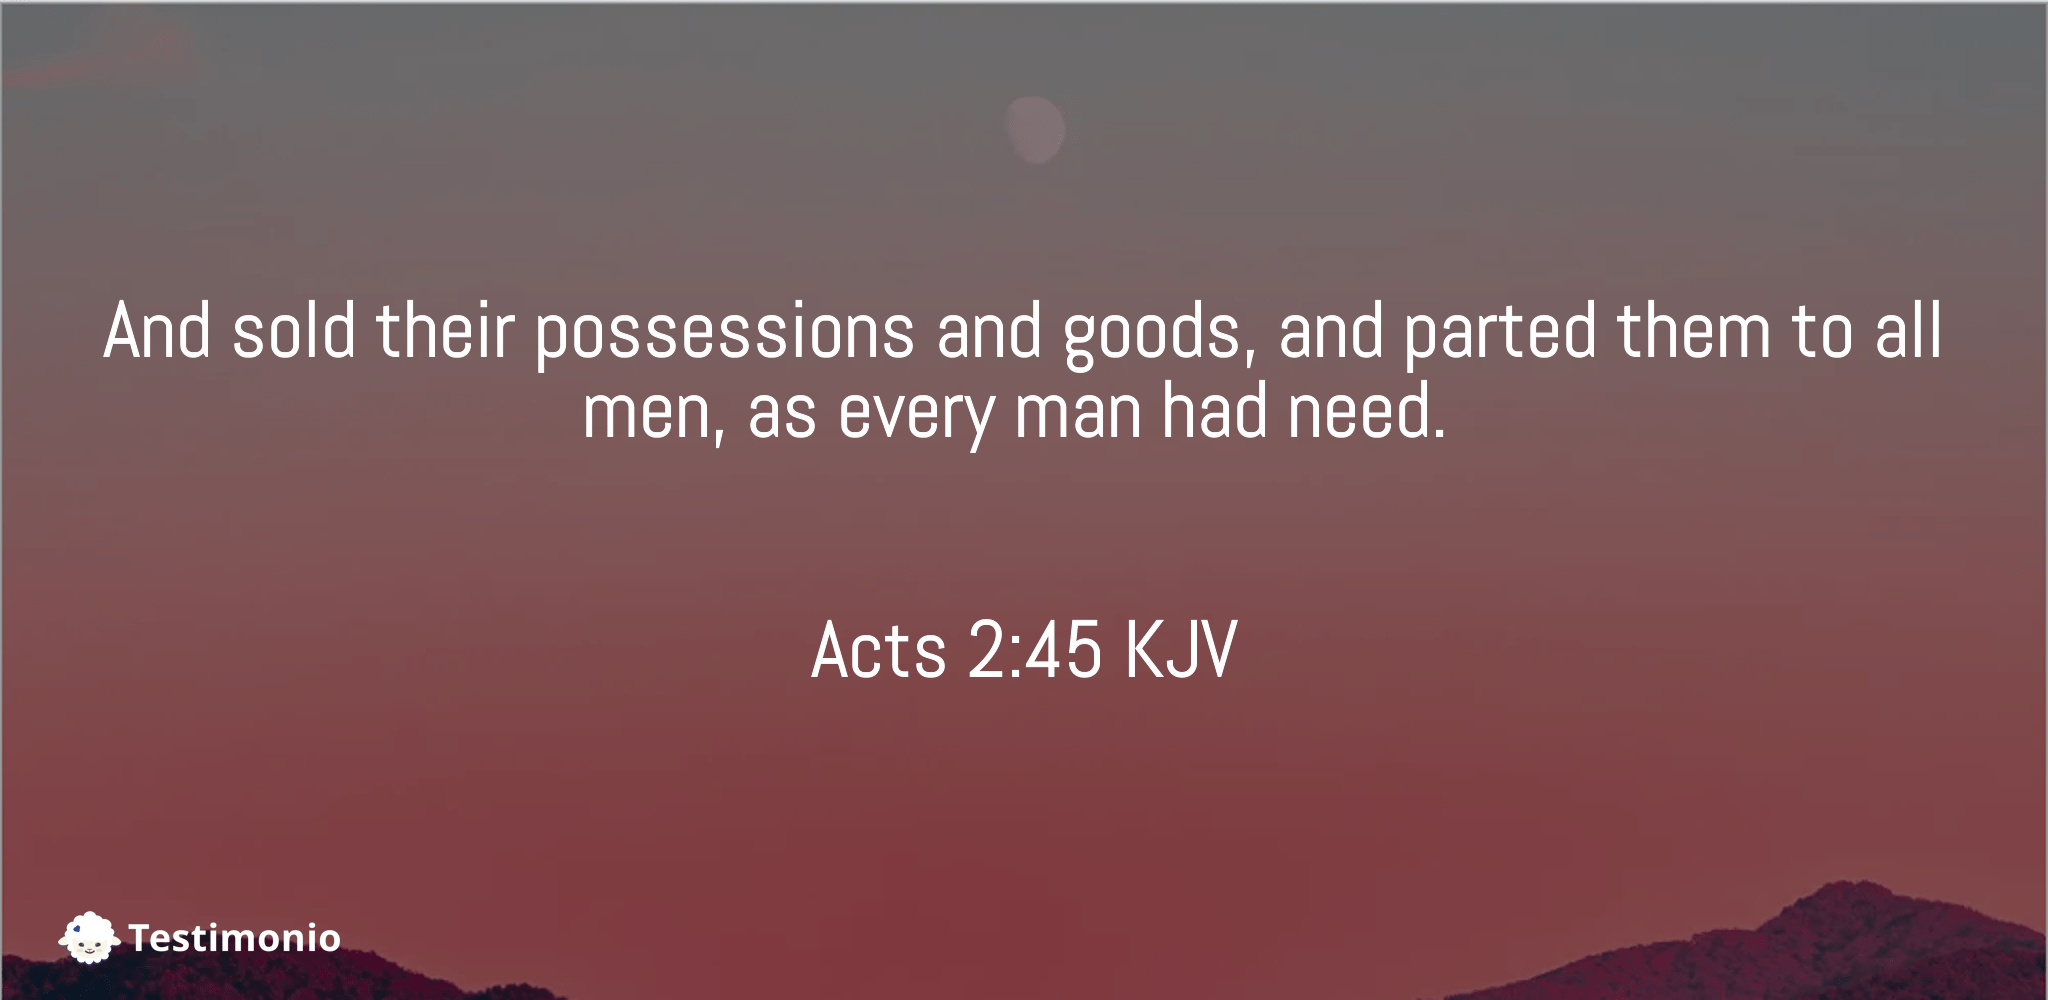 Acts 2:45